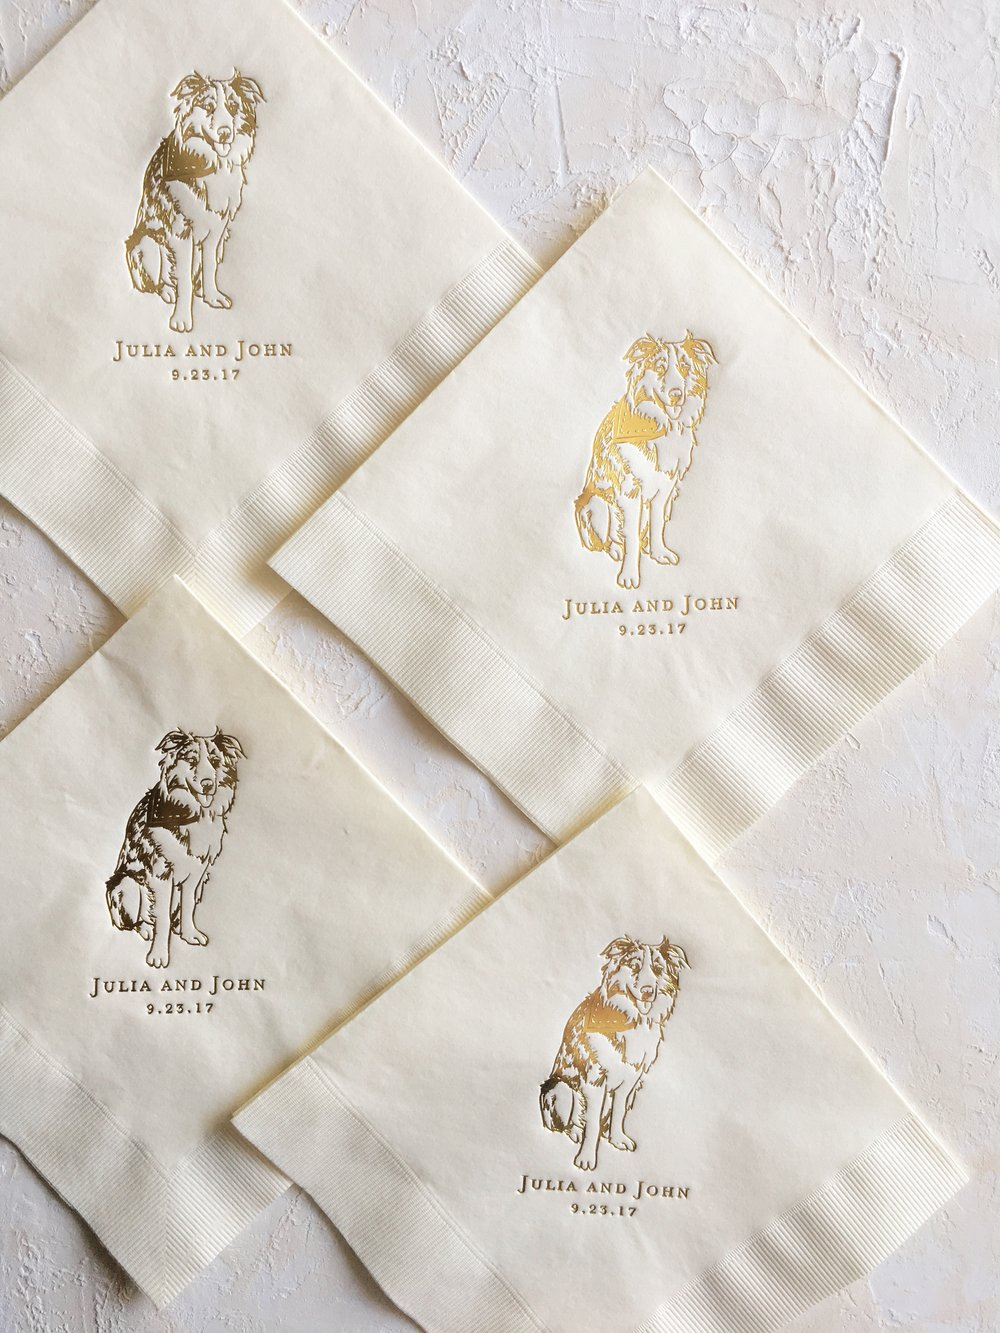 Pet Cocktail Napkins - Shown in Shiny Gold on Ivory Buffet Napkins